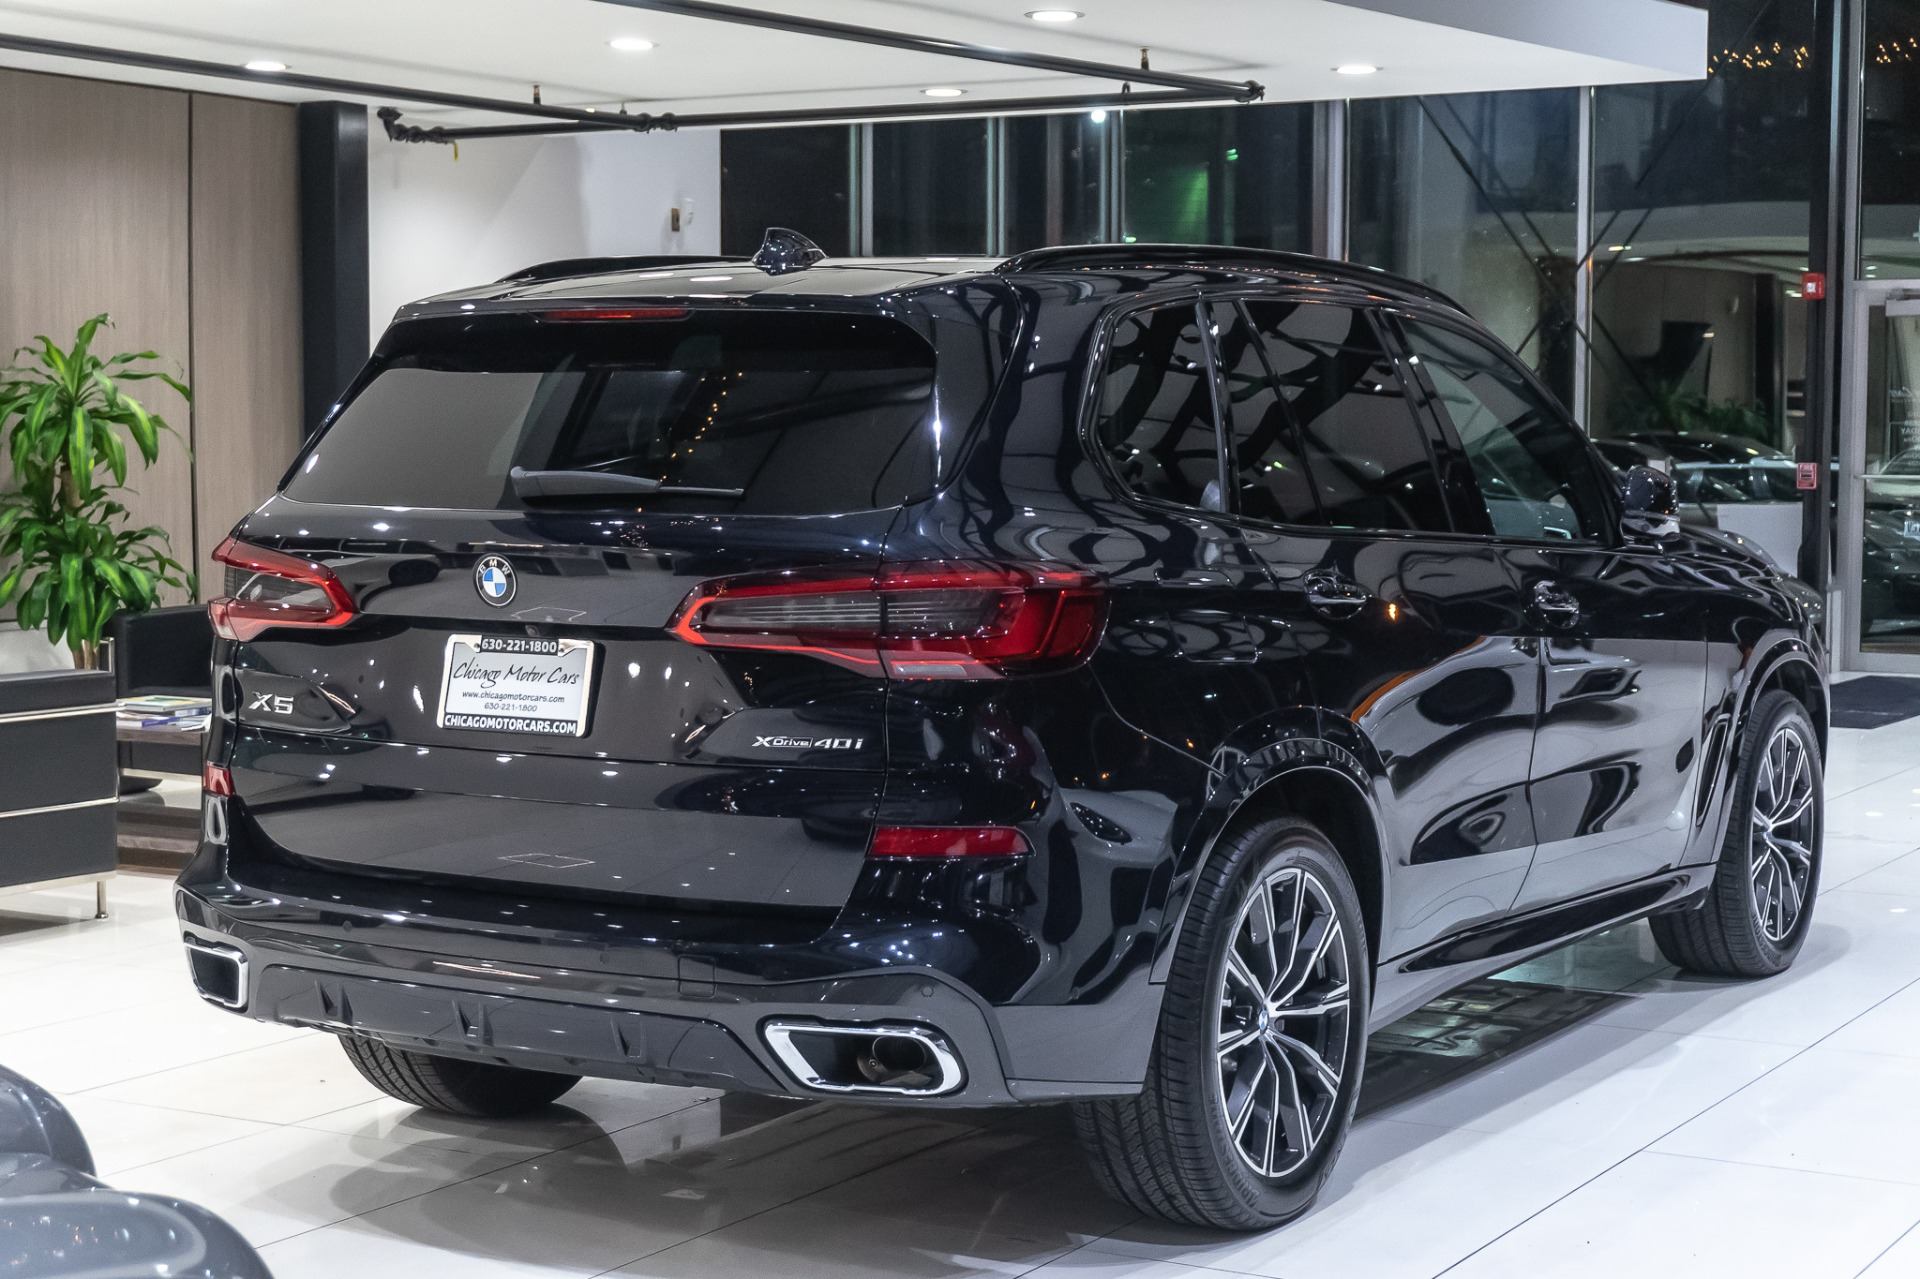 2019 Bmw X5 Xdrive40i Suv M Sport Premium 2 Package Park Assist Chicago Motor Cars Inc Official Corporate Website For Chicago Motor Cars